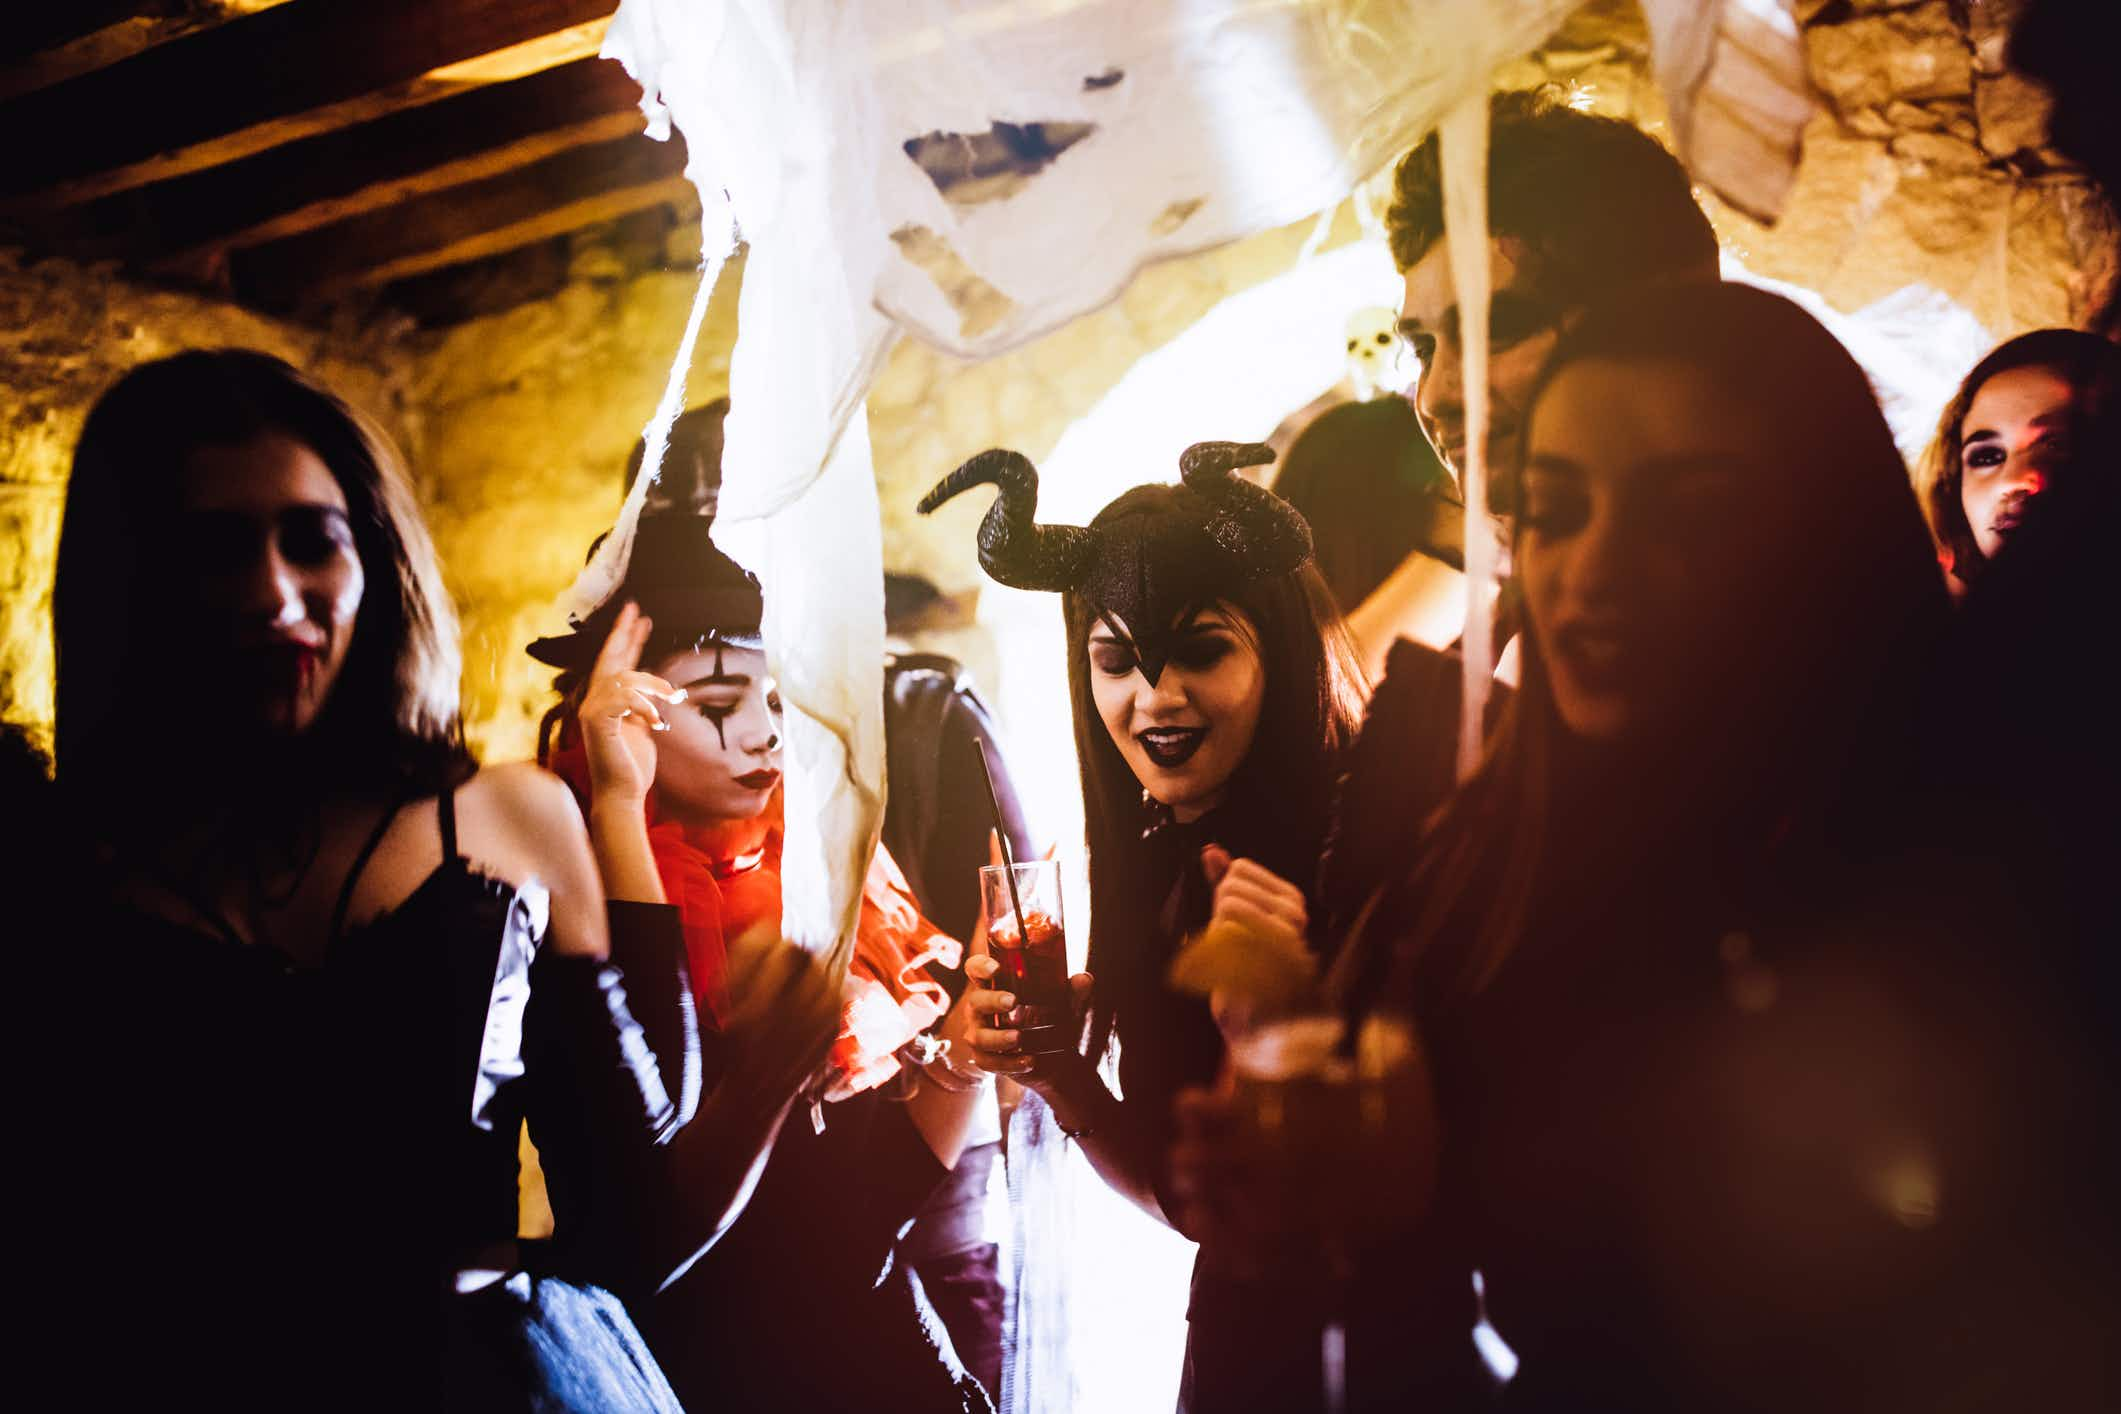 Join 1000 revellers as they celebrate Halloween in the shadow of Dracula's castle